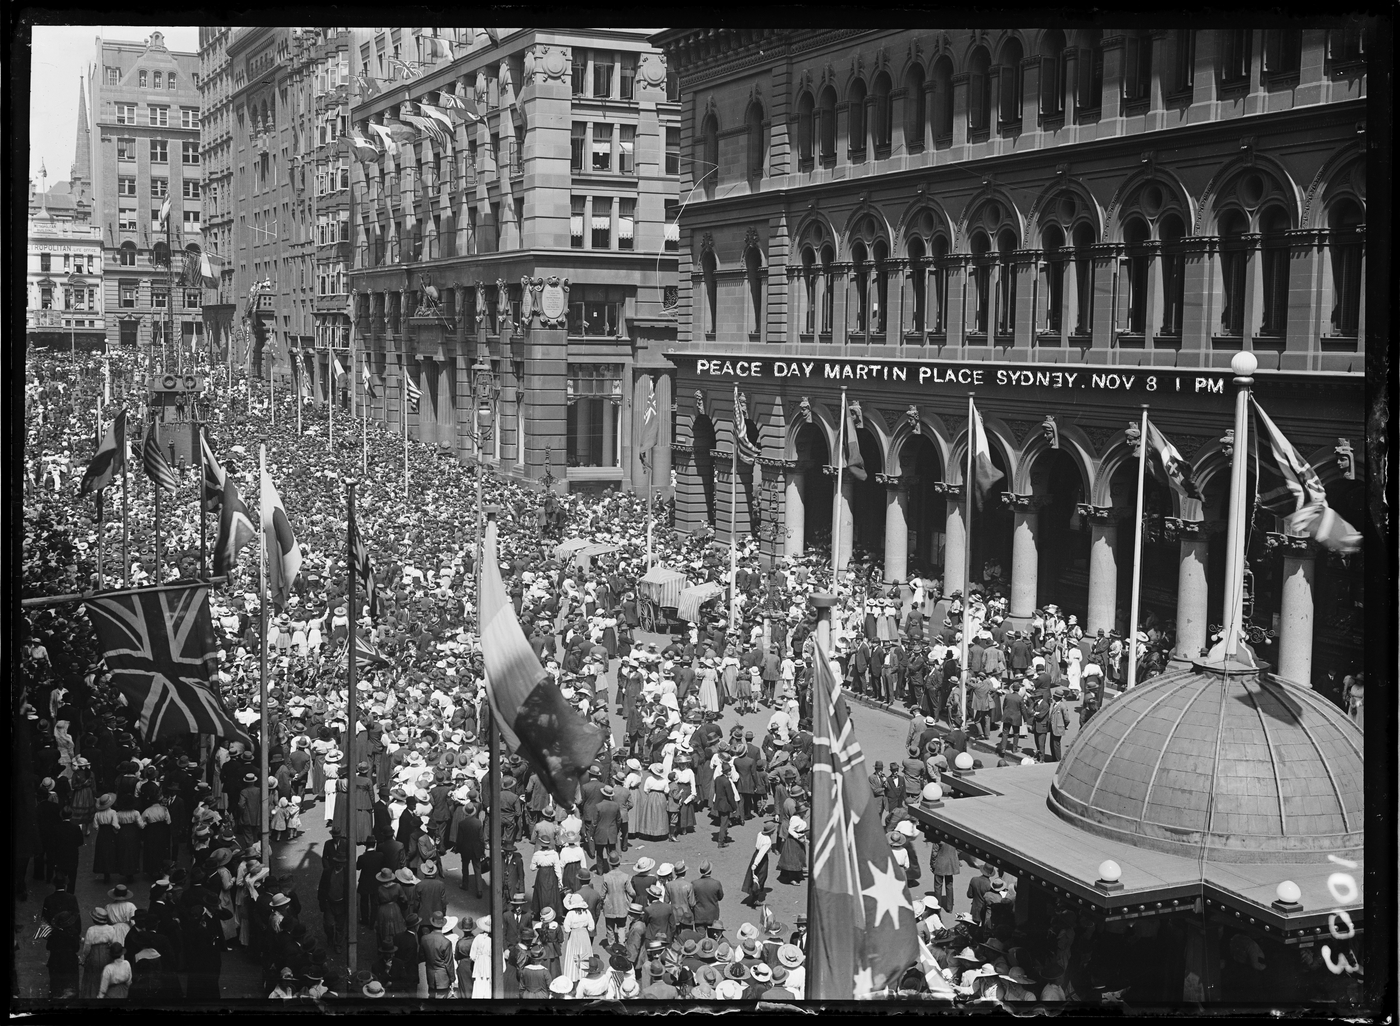 Series 14: Processions and events (Peace Day, Duke of York visit, Jack's Day, Eight Hour day, American Fleet visit), ca. 1916-1947 / photographed by Arthur Ernest Foster